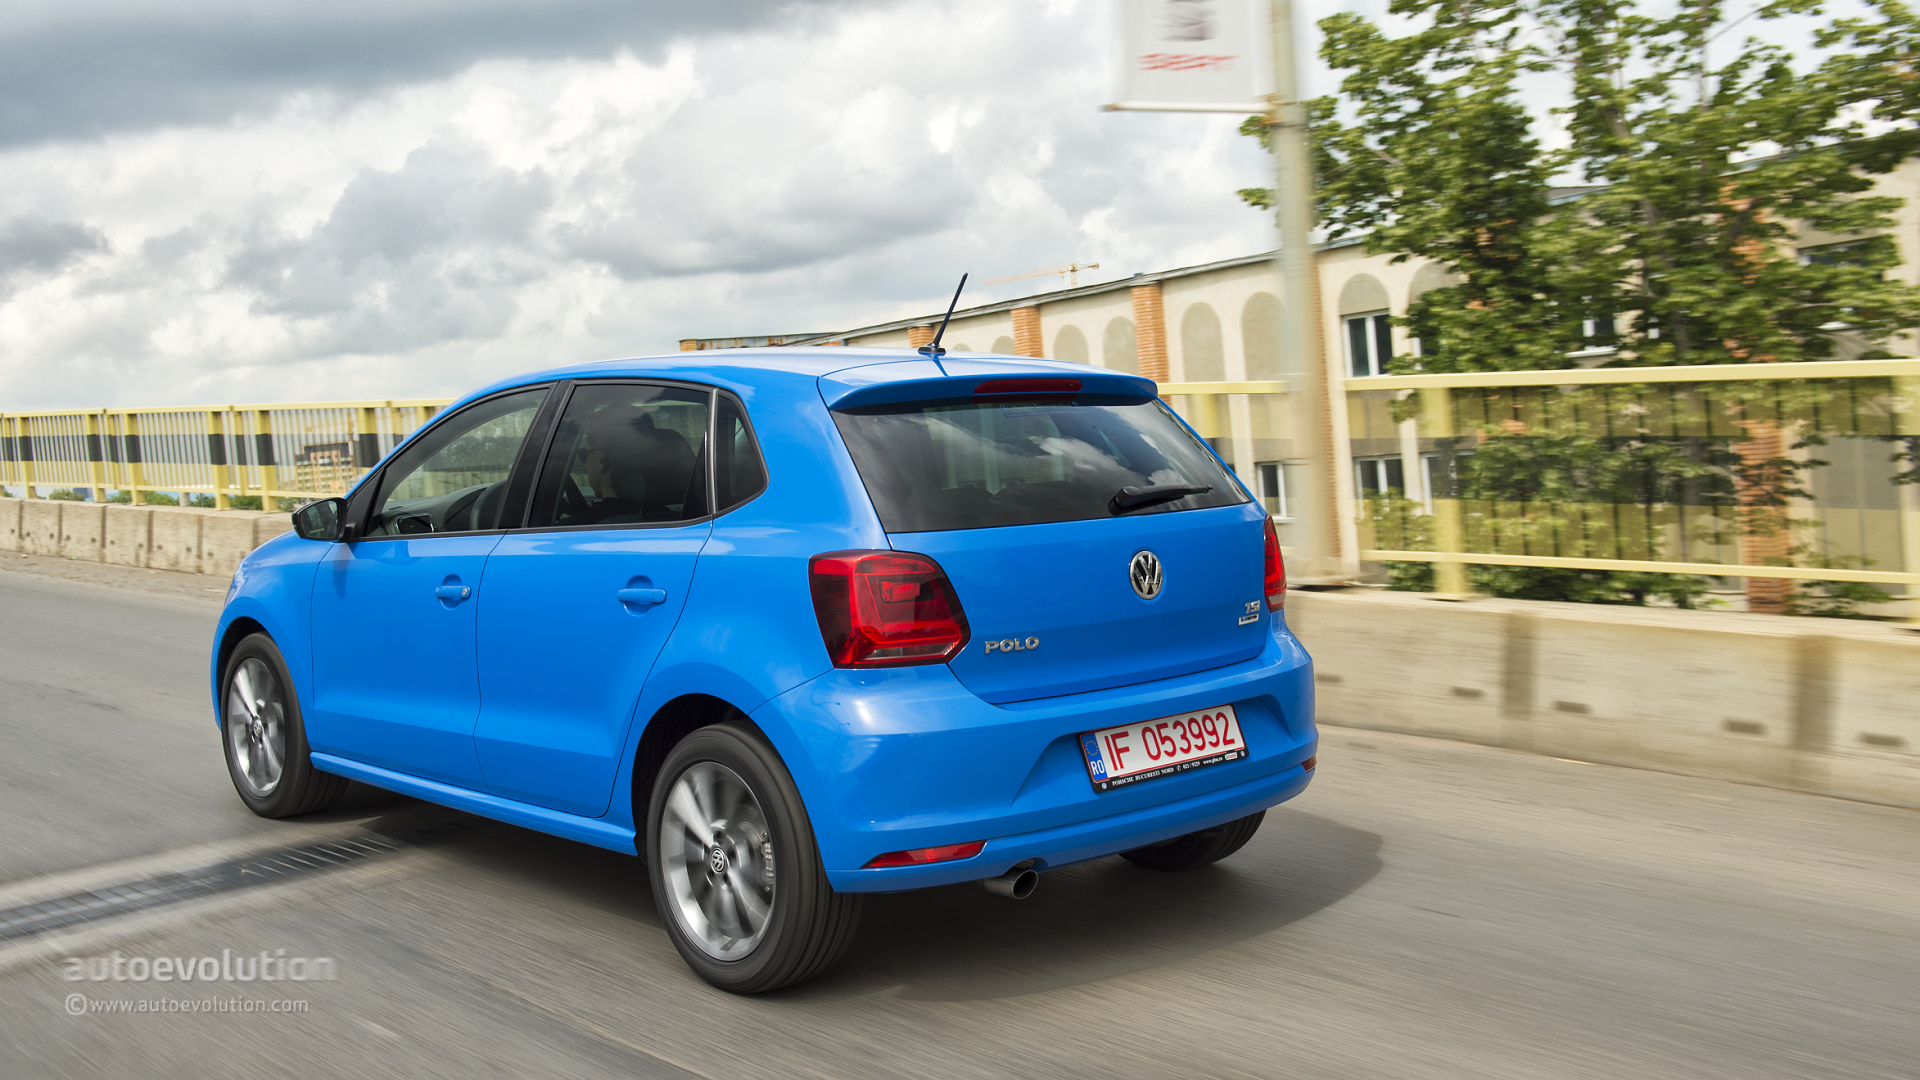 2015 volkswagen polo quietly adds 110 hp 1 0 tsi turbo 3. Black Bedroom Furniture Sets. Home Design Ideas